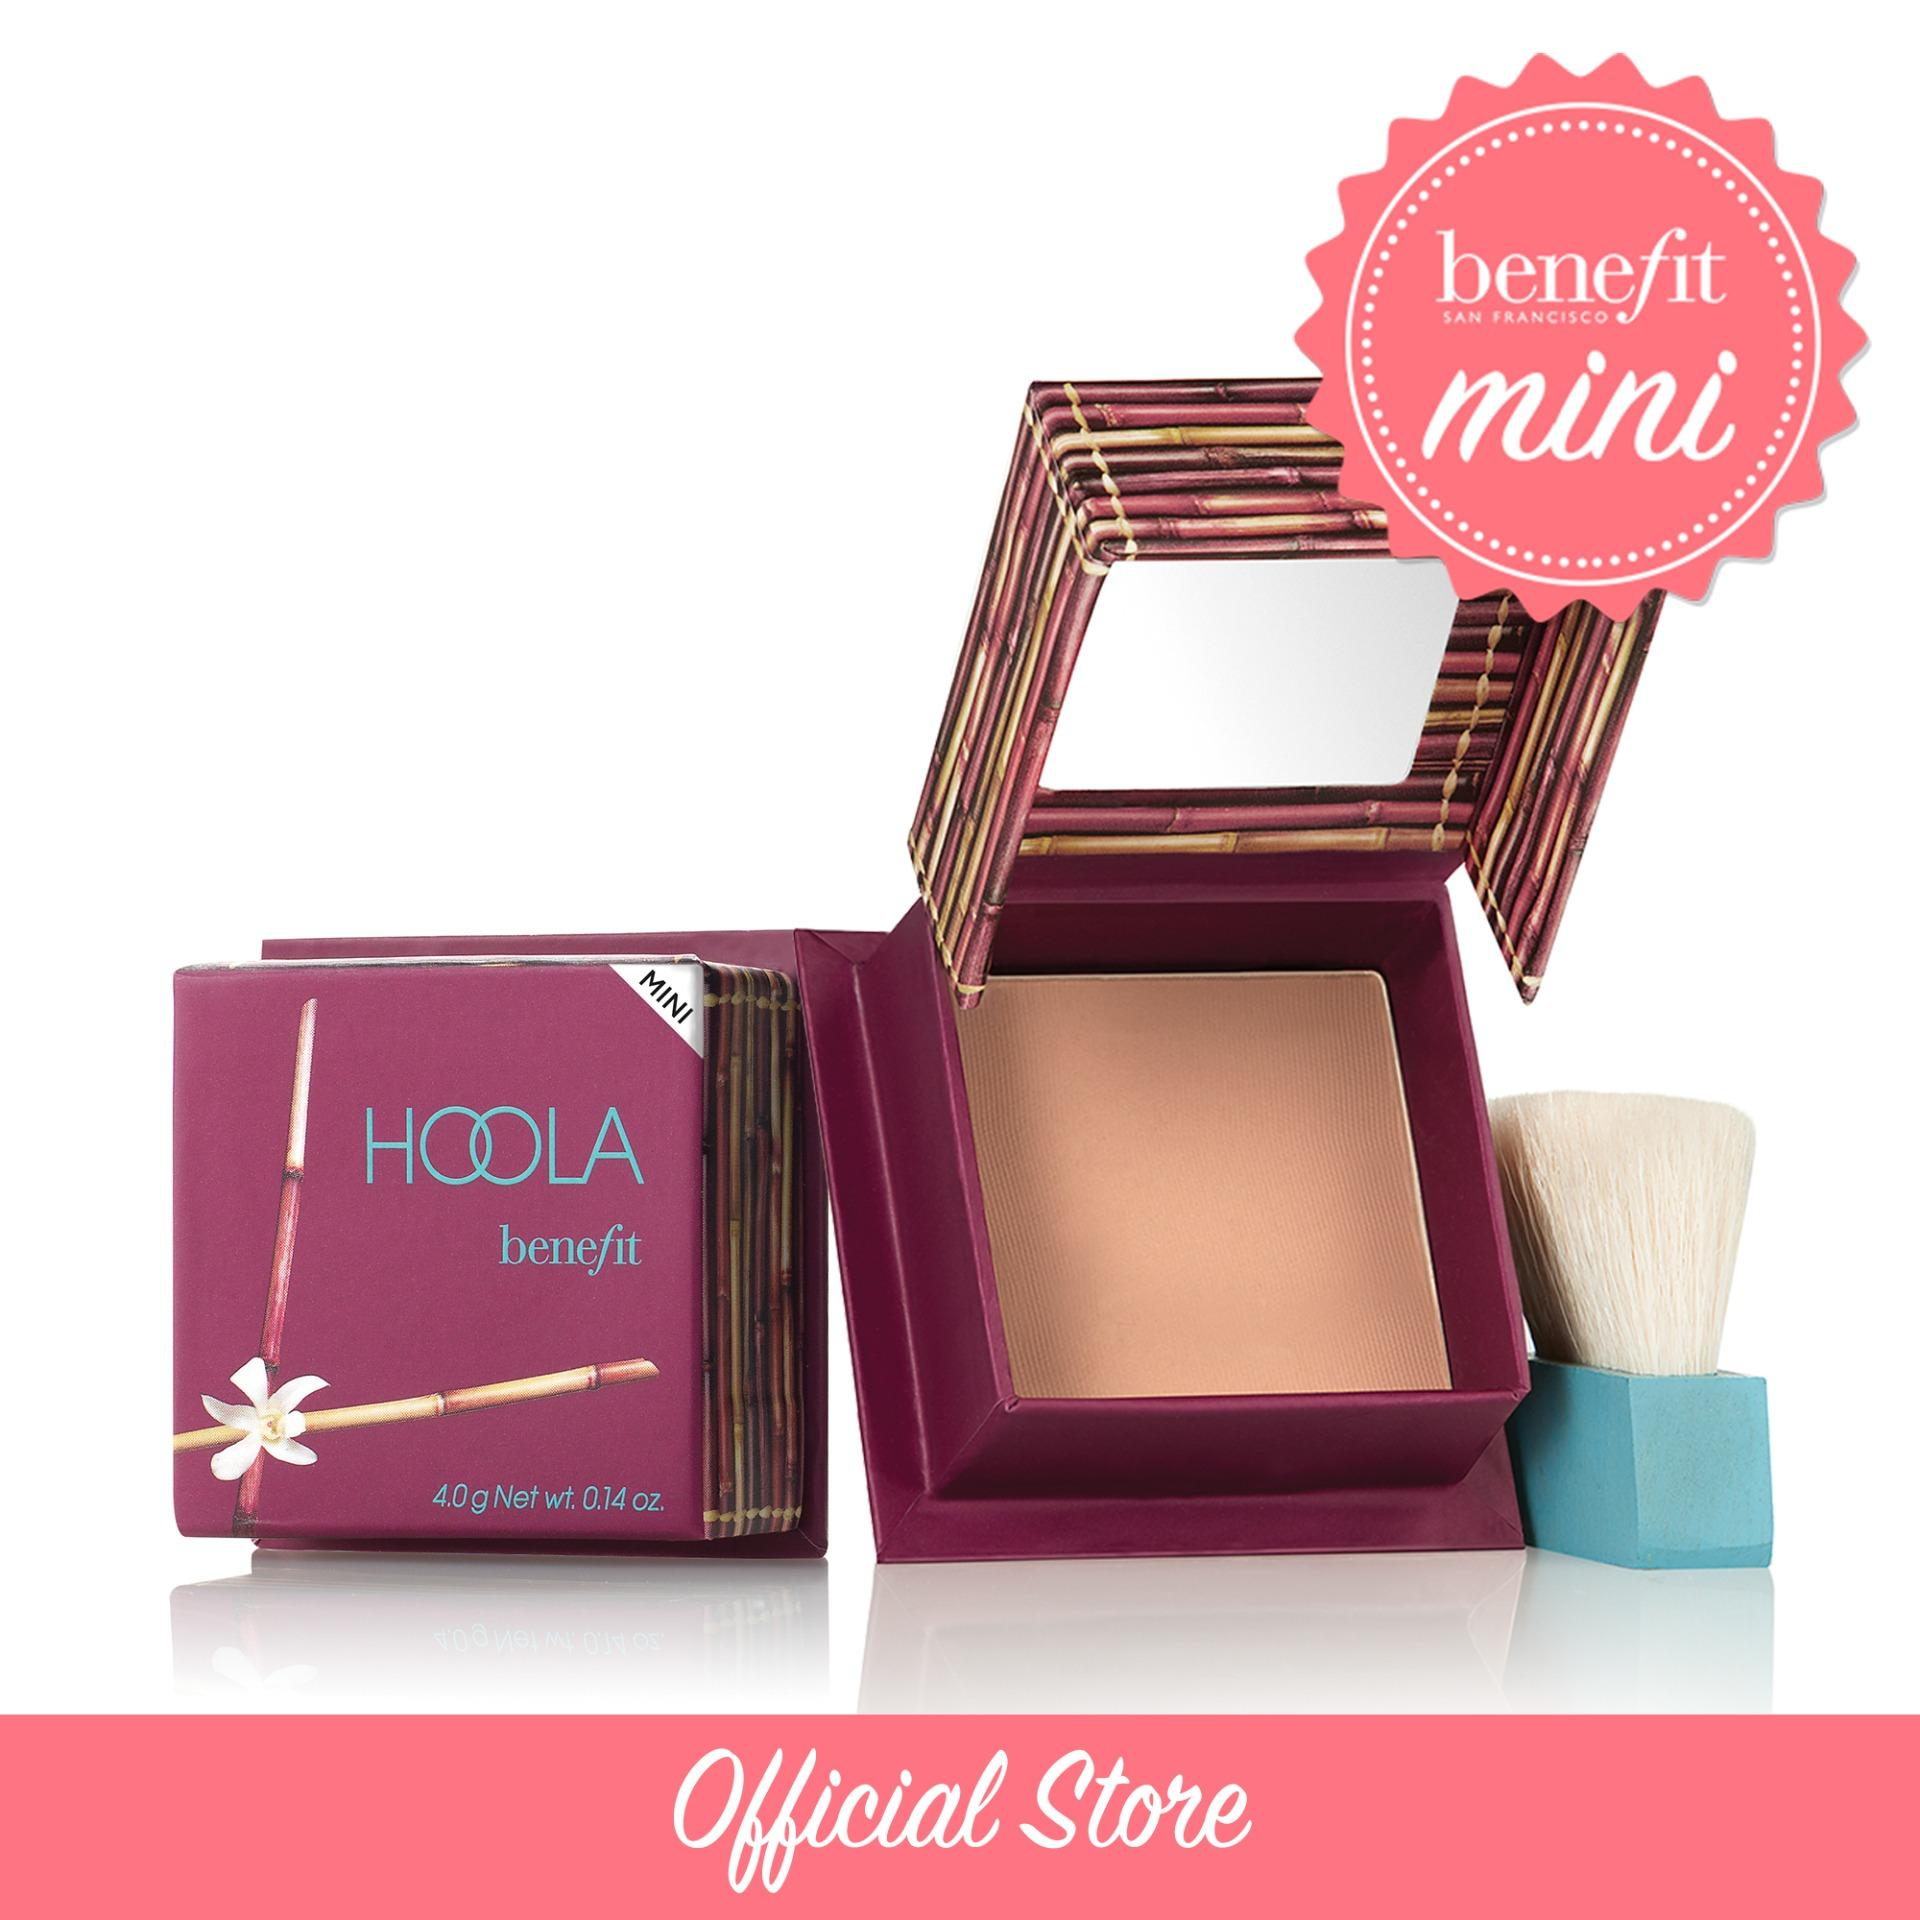 Benefit Hoola mini Philippines